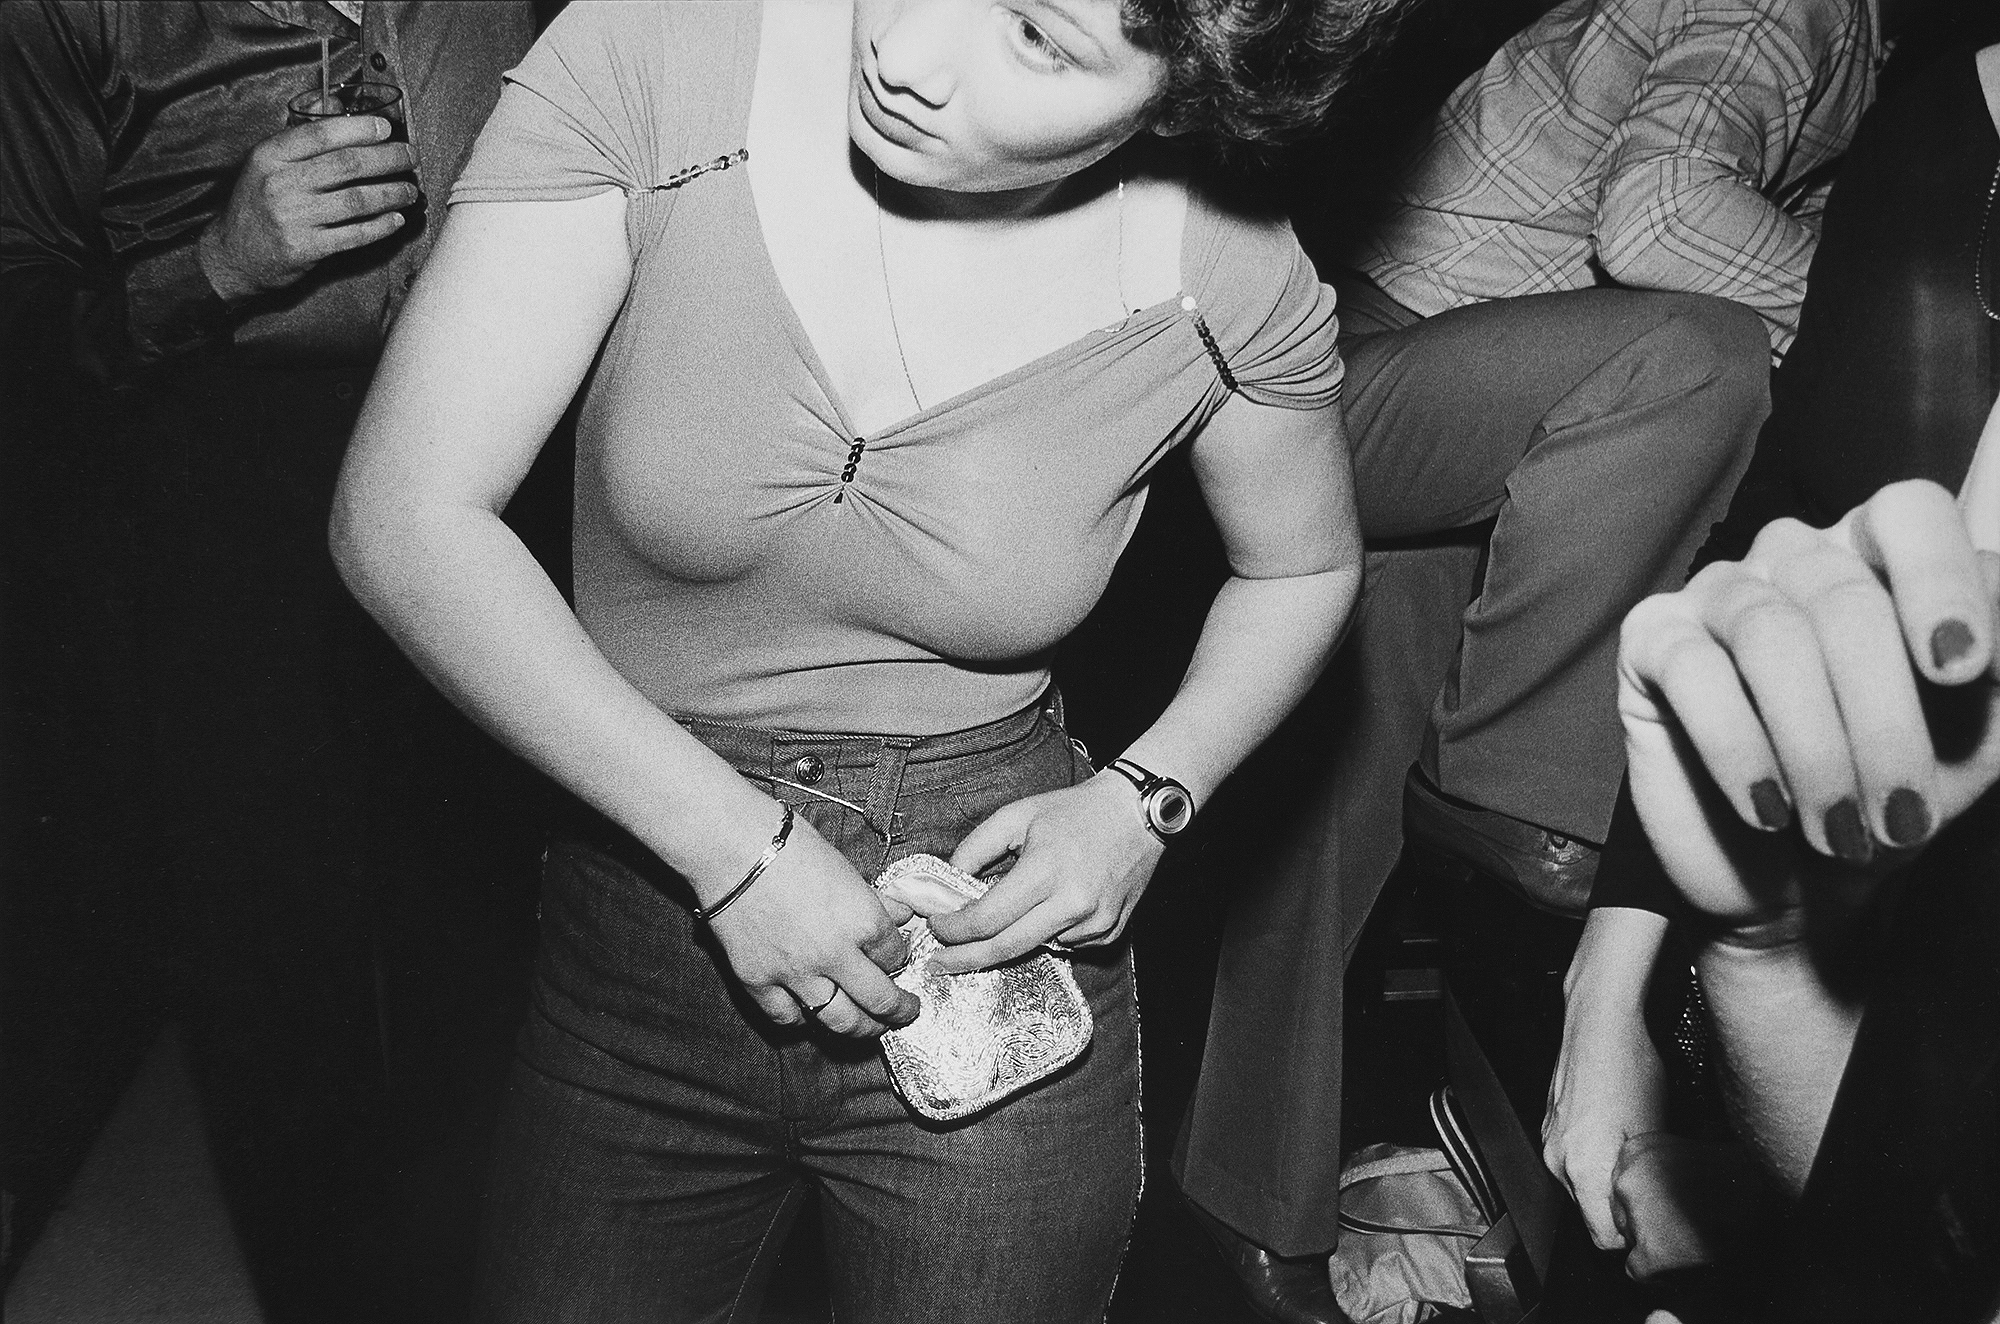 Tony_Ward_photography_early_work_Night_Fever_portfolio_1970's_erotic_dirty_dancing_couples_grinding_purses